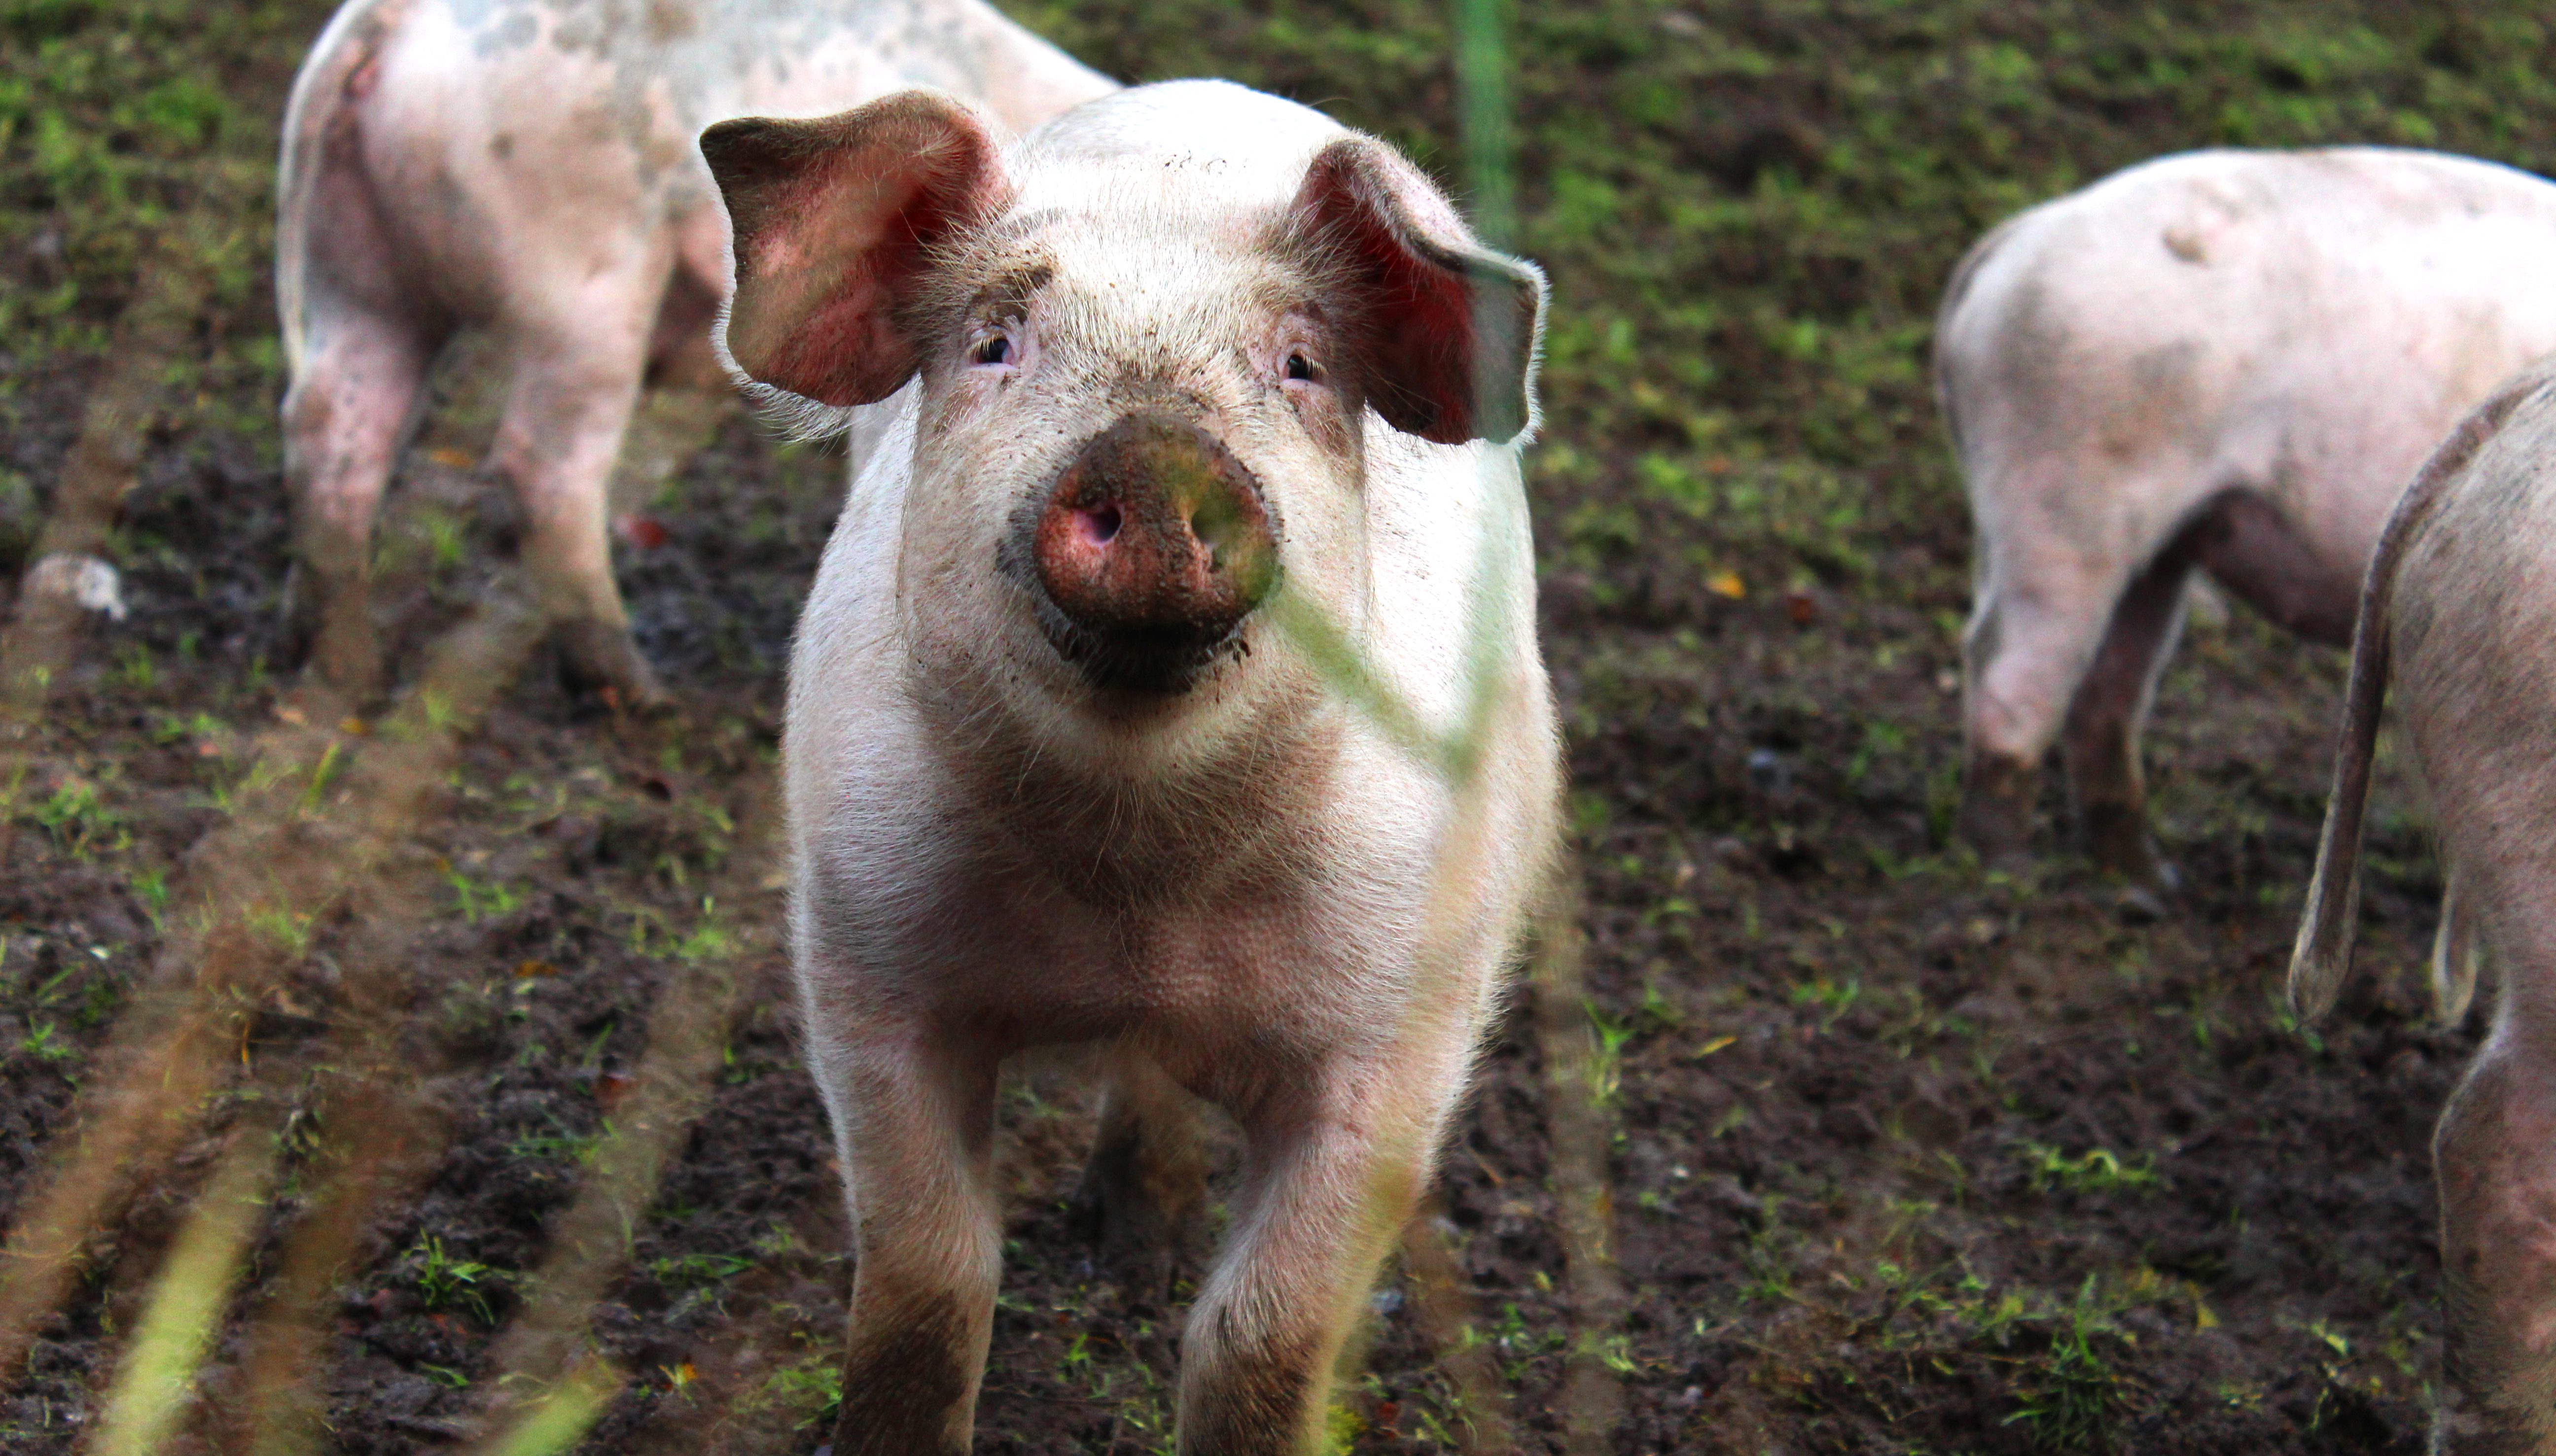 In Denmark Happy Pigs And Cows Live On Fields And In